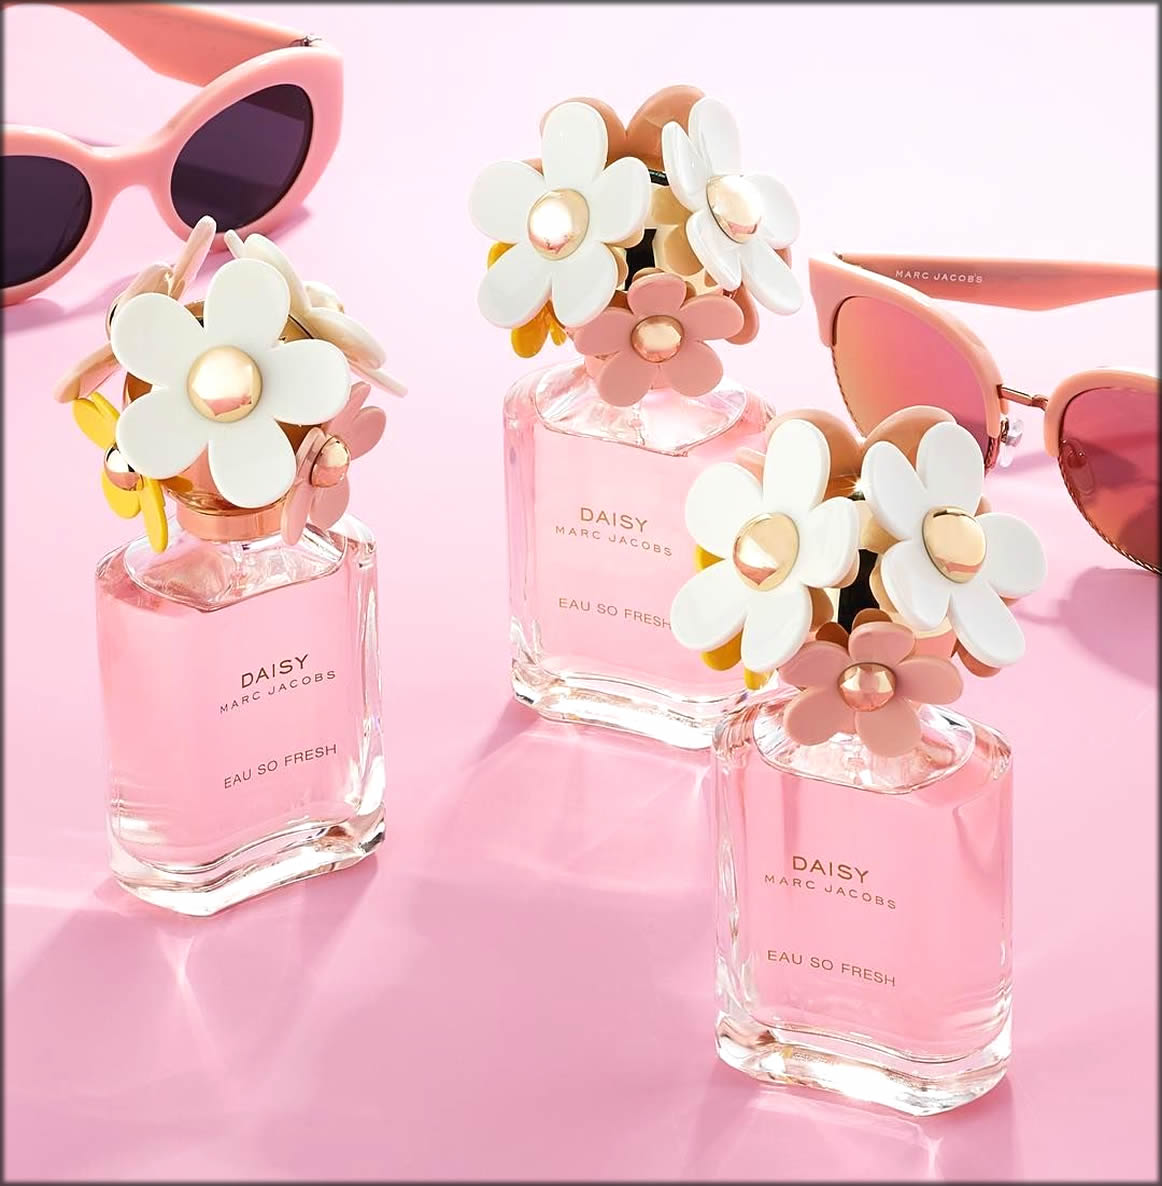 Fragrance Of Daisy Marc Jacobs Perfumes For Women